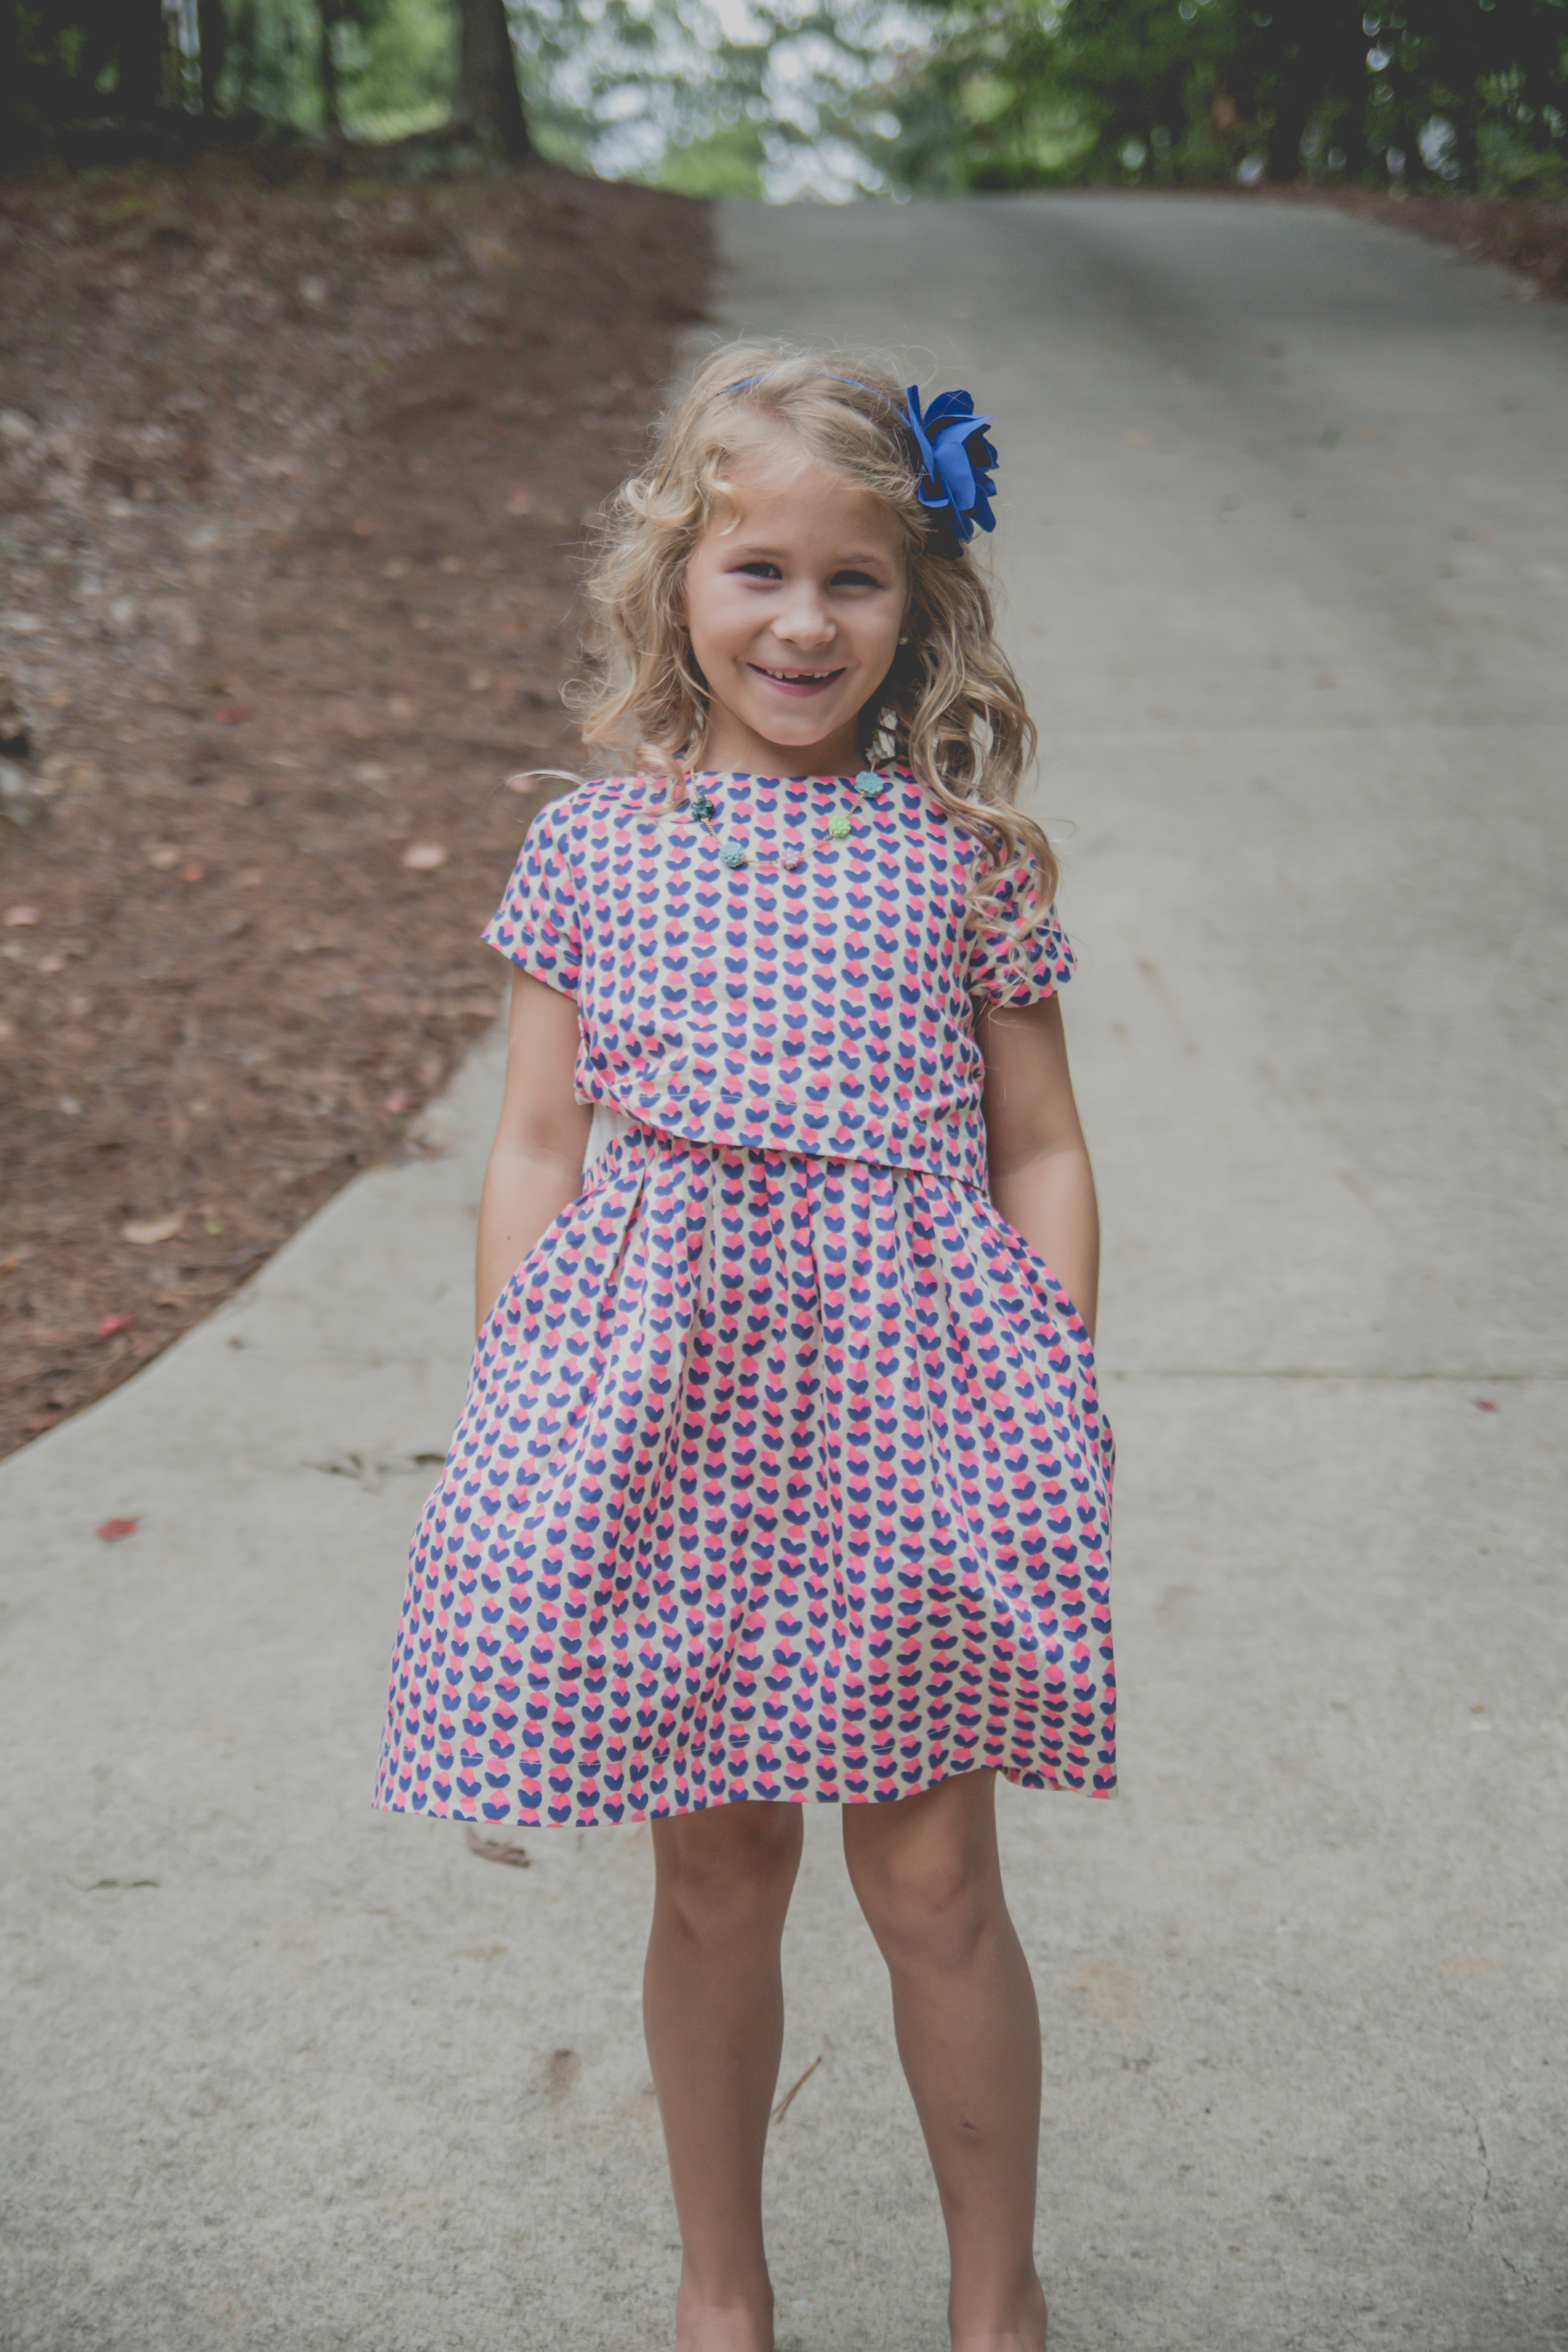 20150912-Cailee 7th Birthday-360-2480x3720